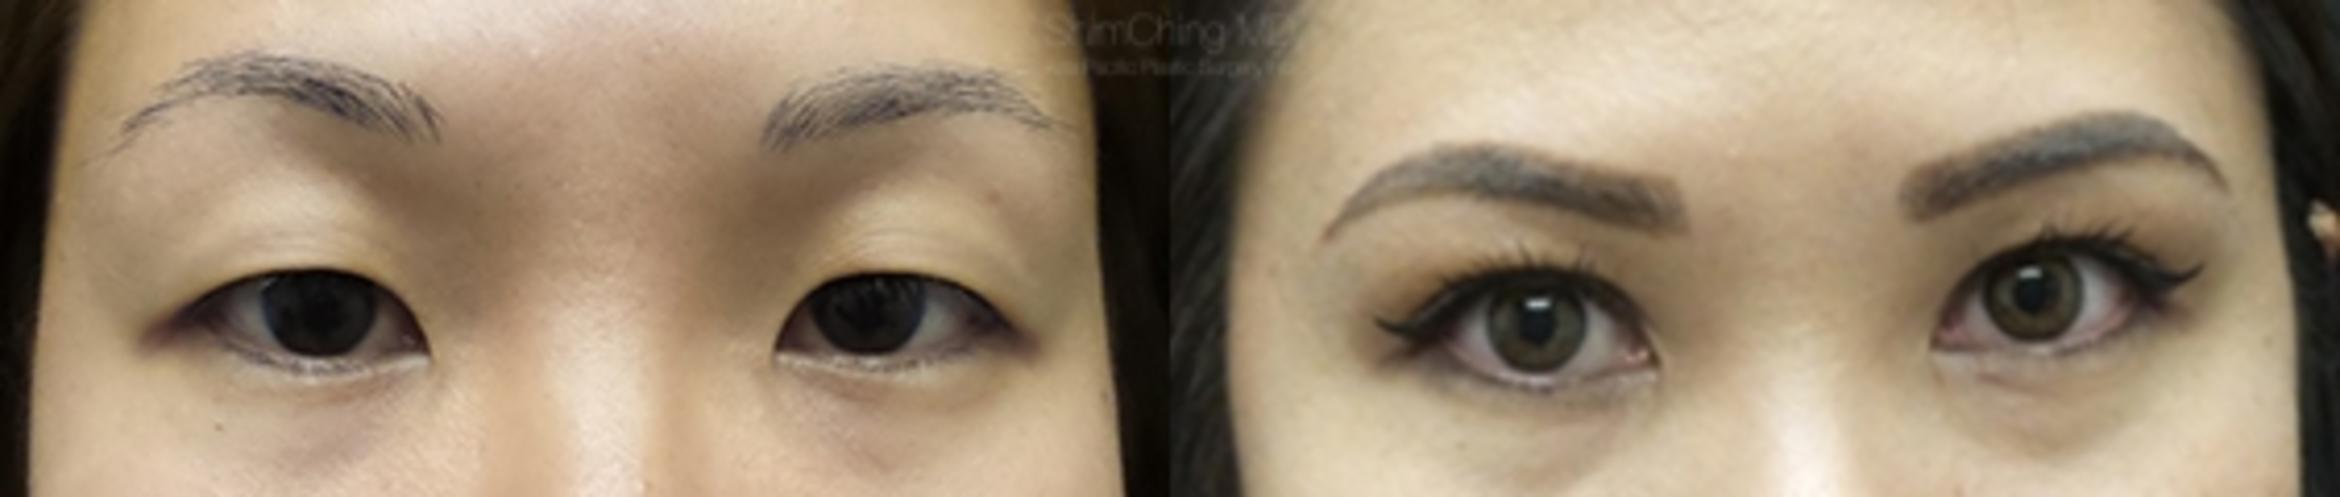 Asian Eyelid Case 153 Before & After View #1 | Honolulu, HI | Shim Ching, MD: Asia Pacific Plastic Surgery